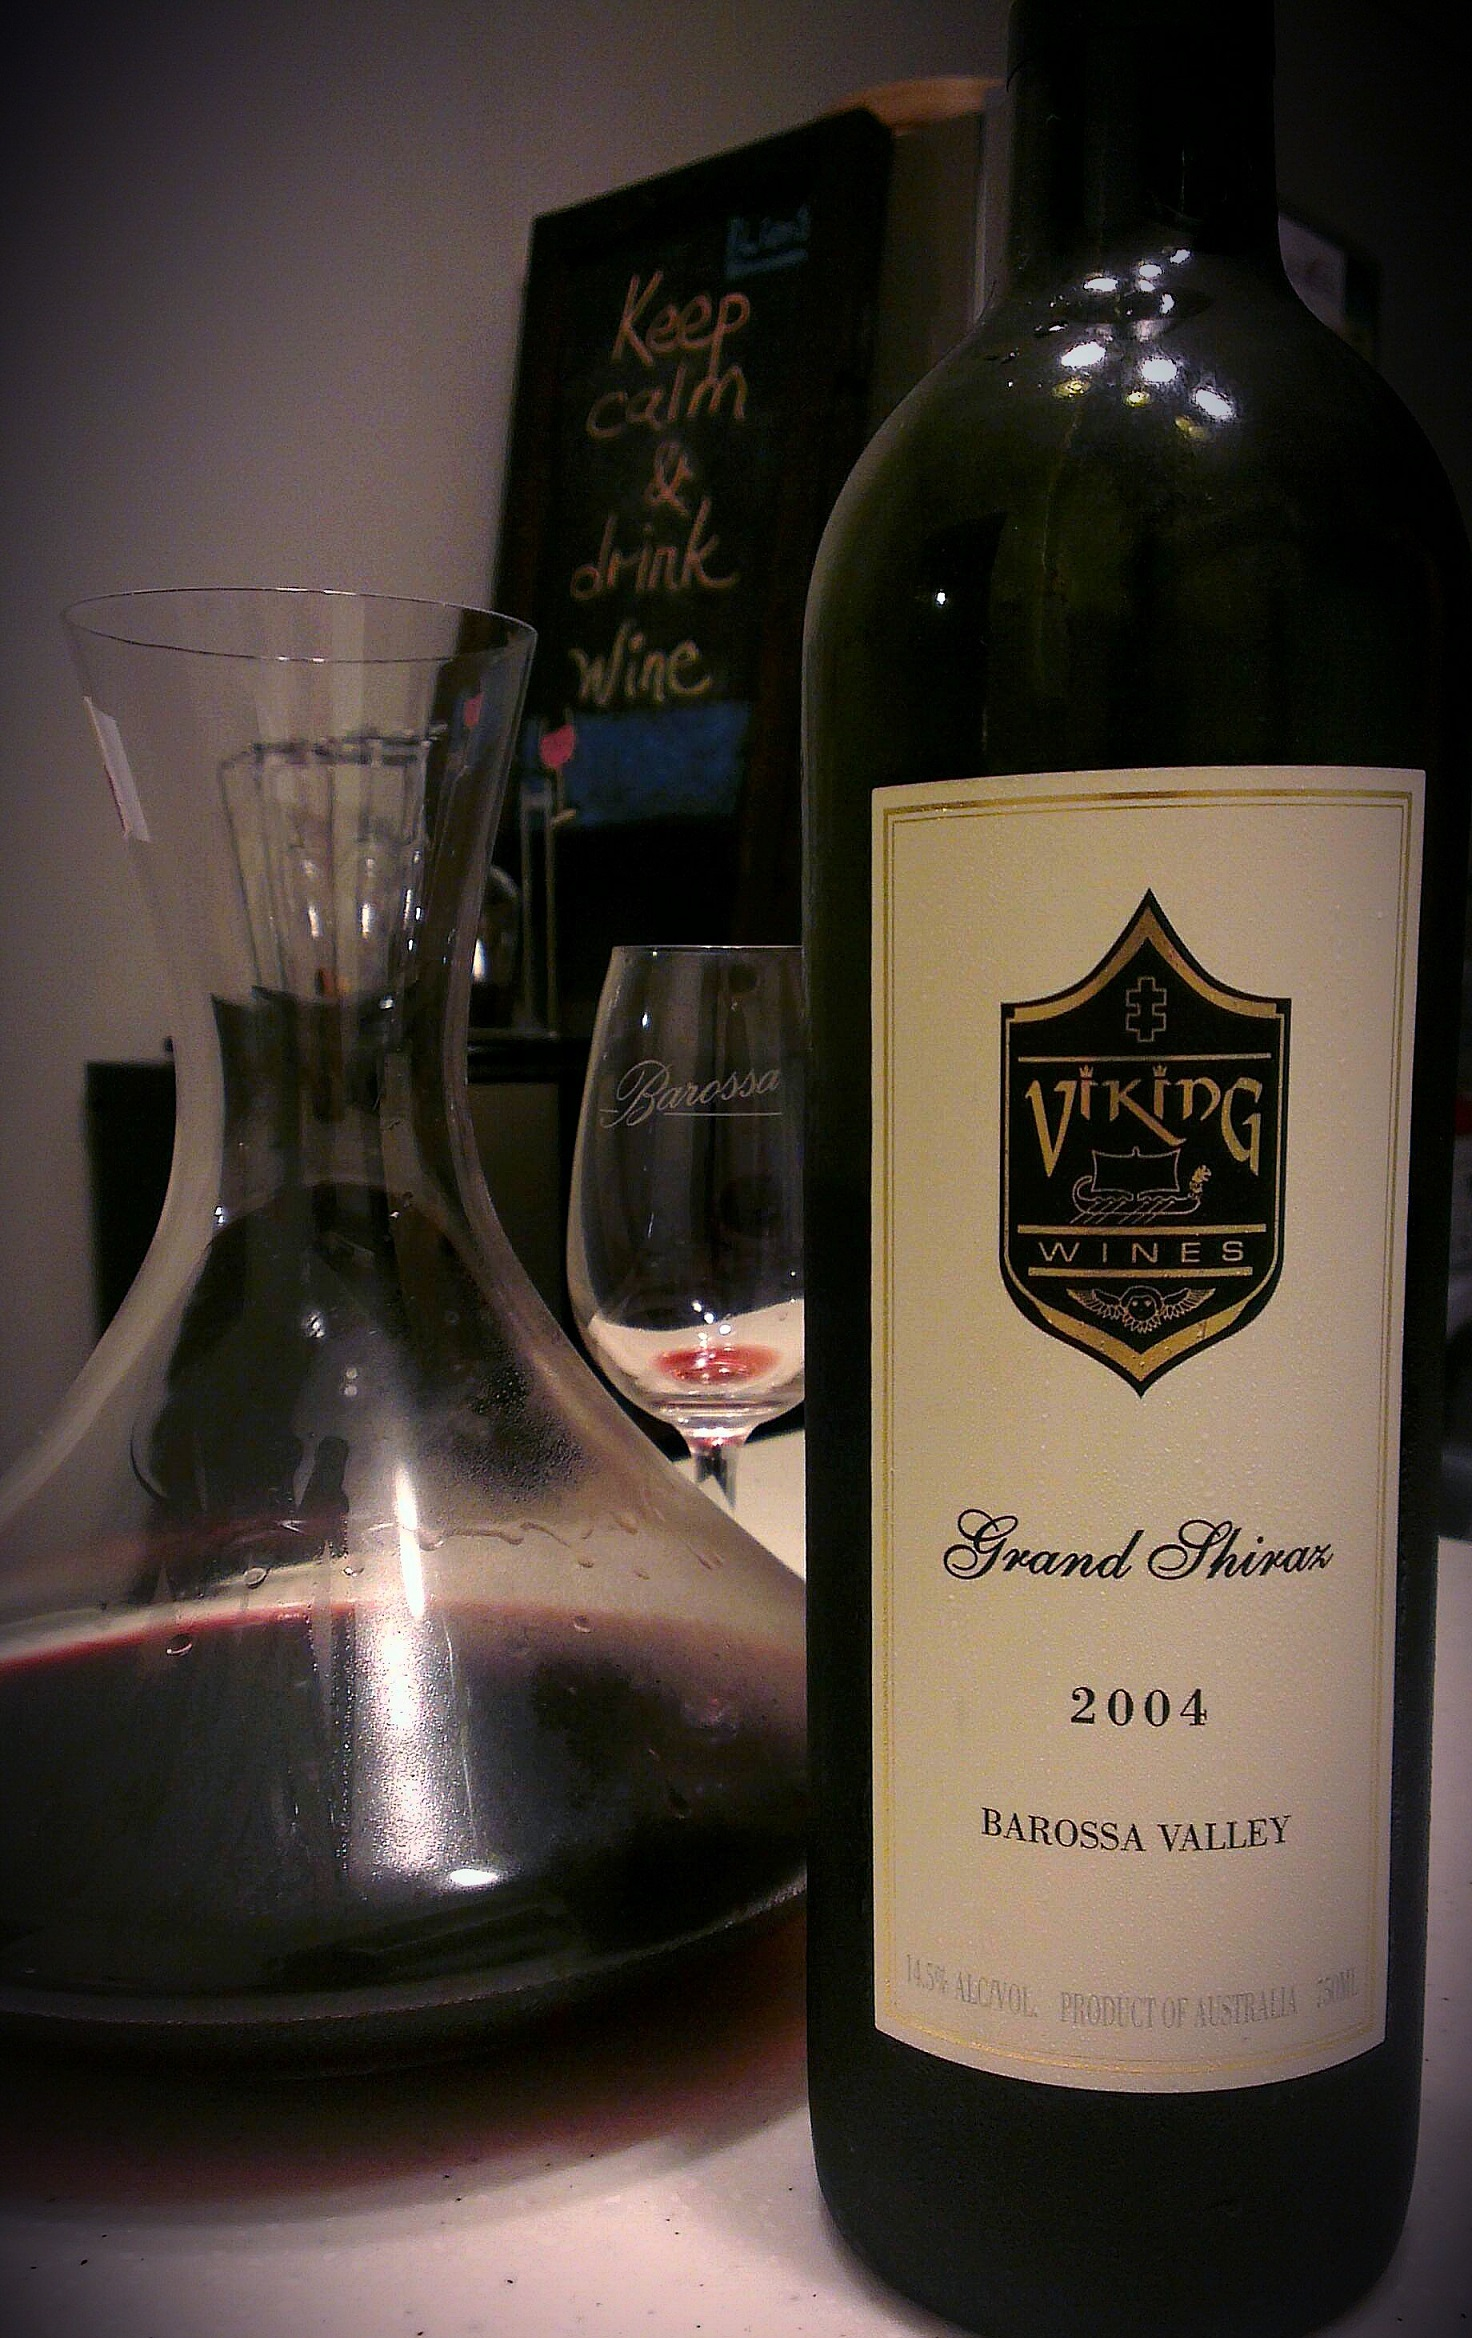 2004 Viking Grand Shiraz